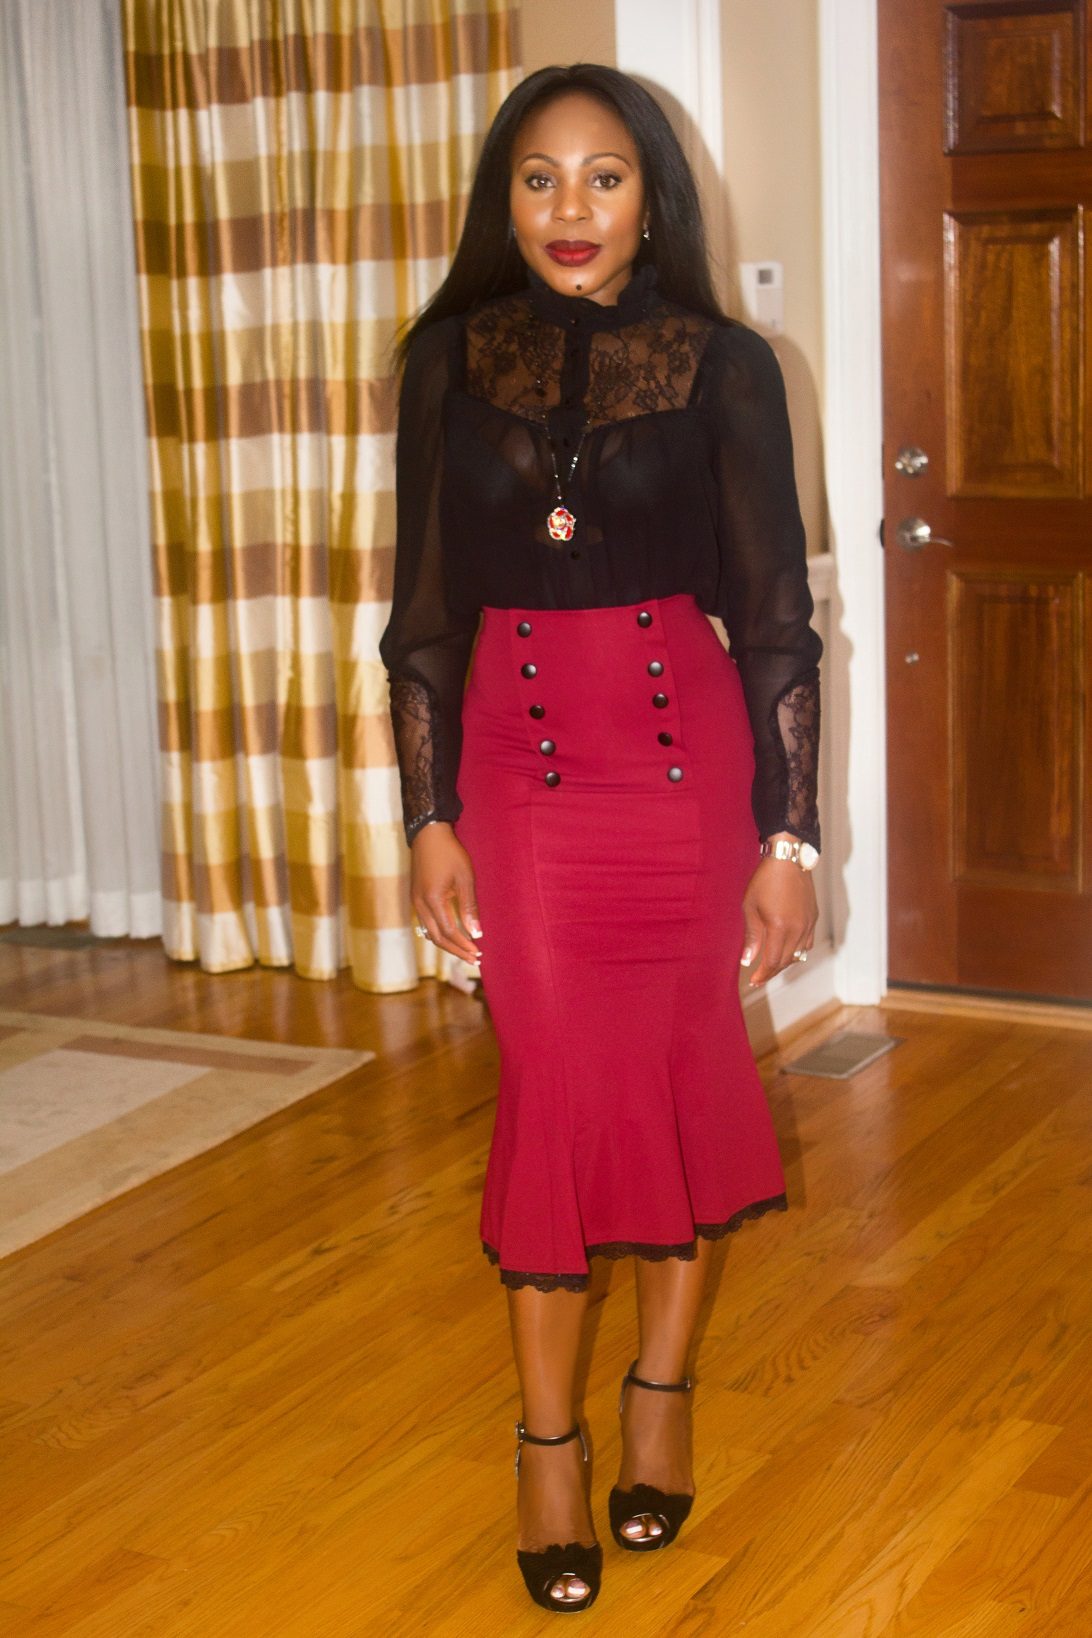 What I am wearing-Red-Fishtail-midi-skirt-with-black-sheer-top